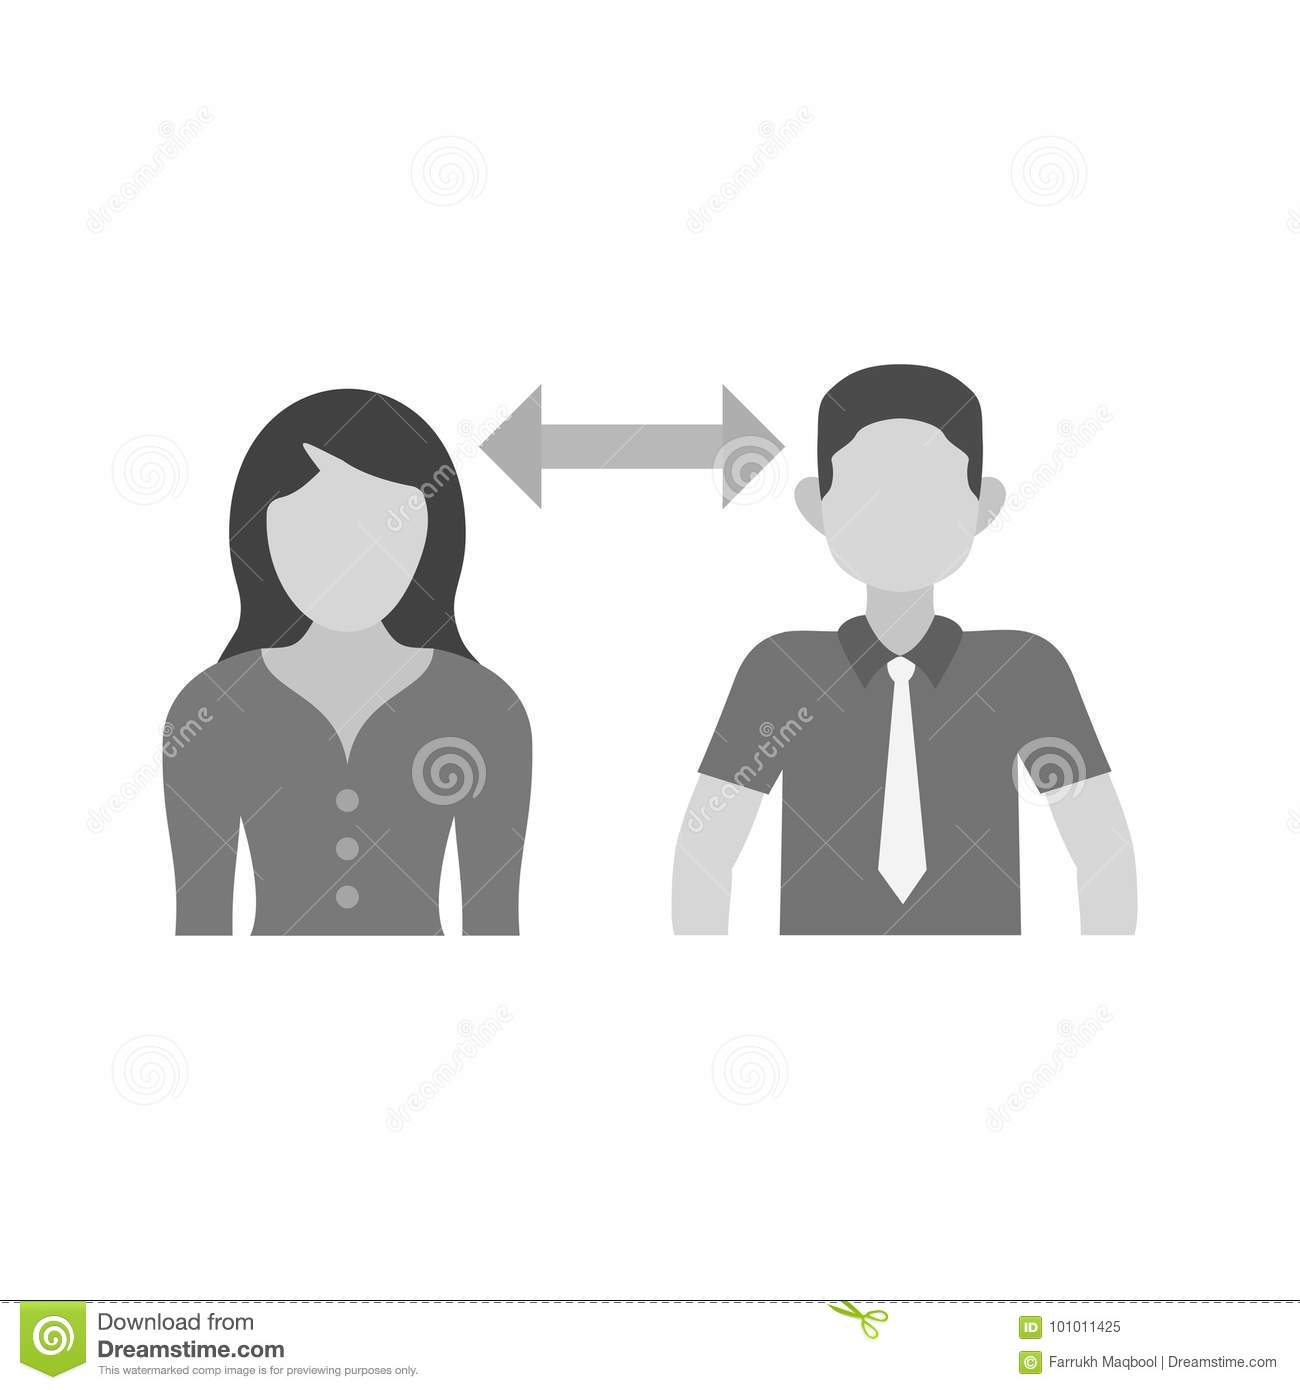 Interpersonal Relationships Stock Vector